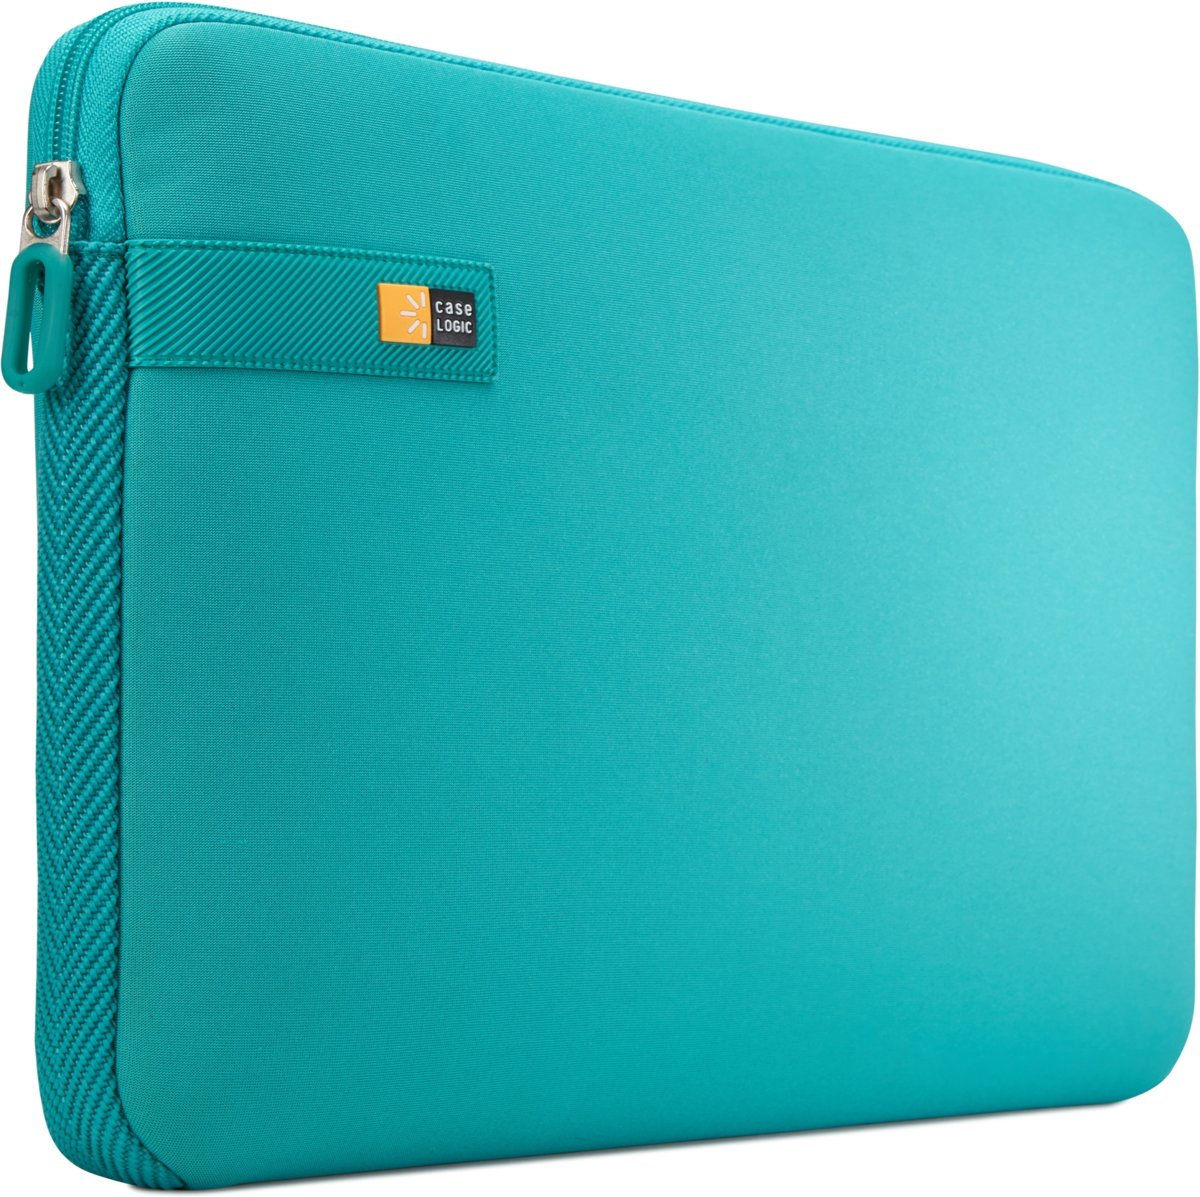 top honderd   case logic laps114 - laptophoes - 14 inch / turquoise